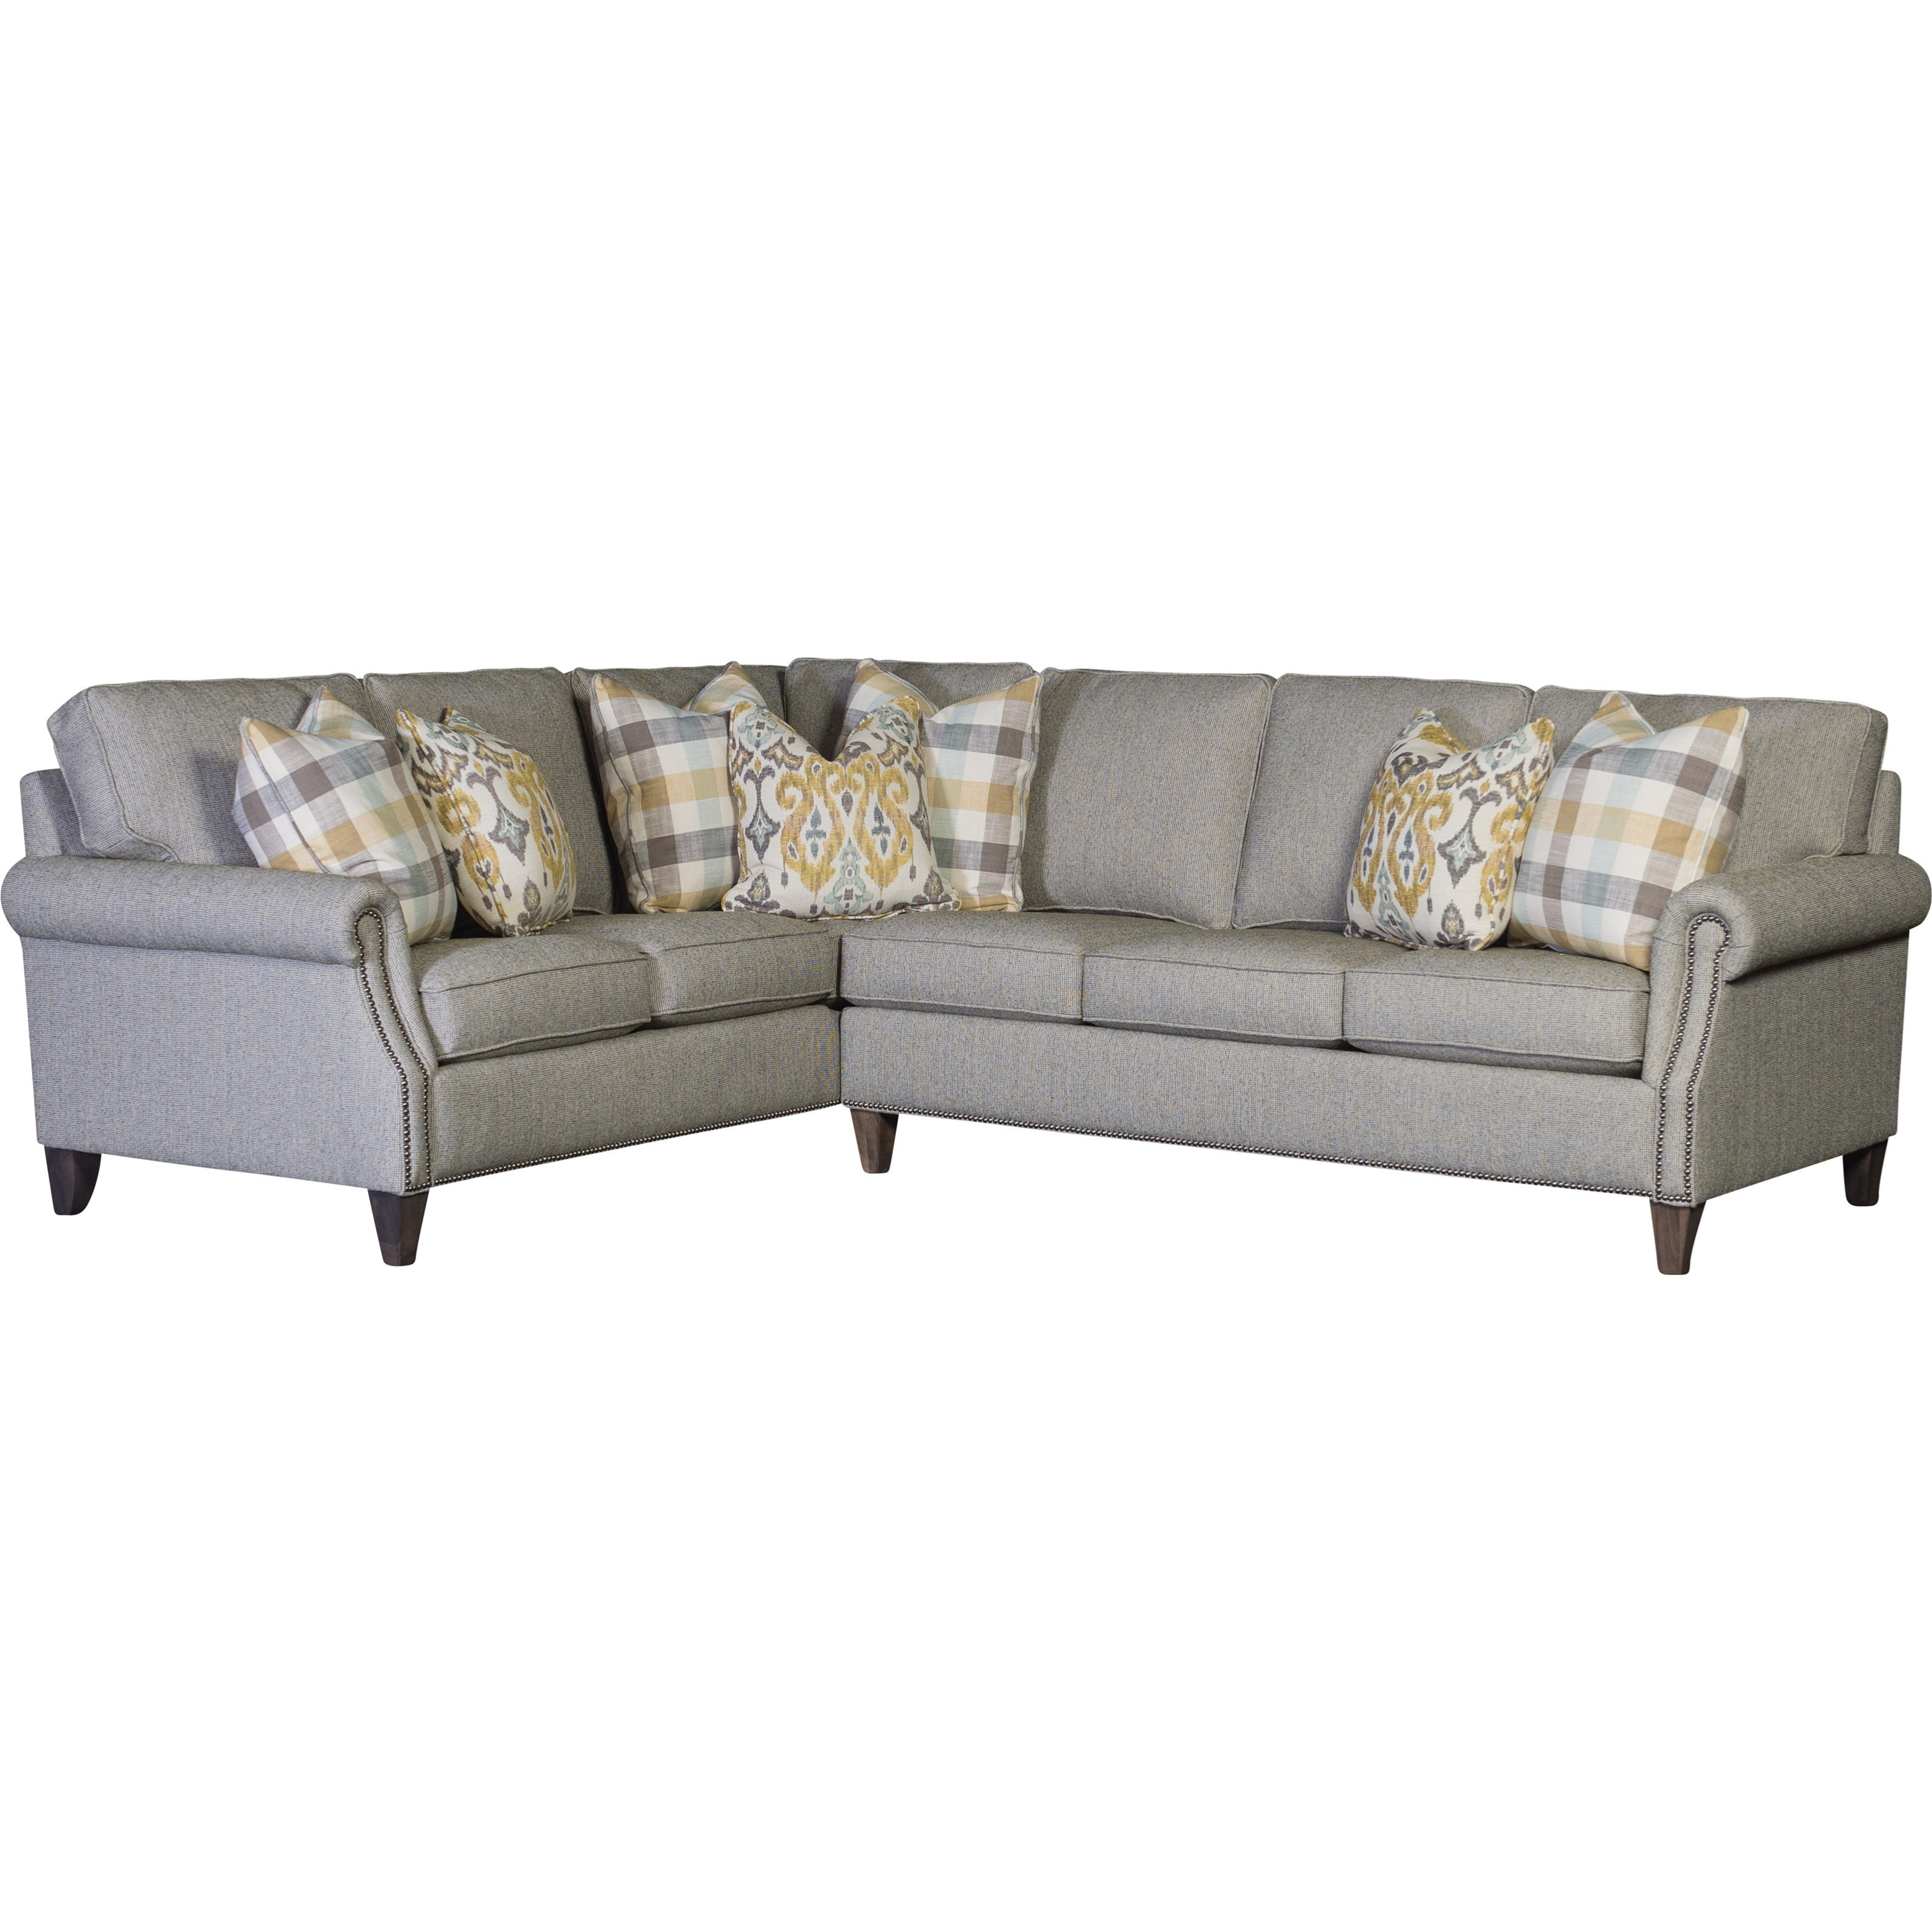 3311 5 Seat Sectional by Mayo at Wilson's Furniture